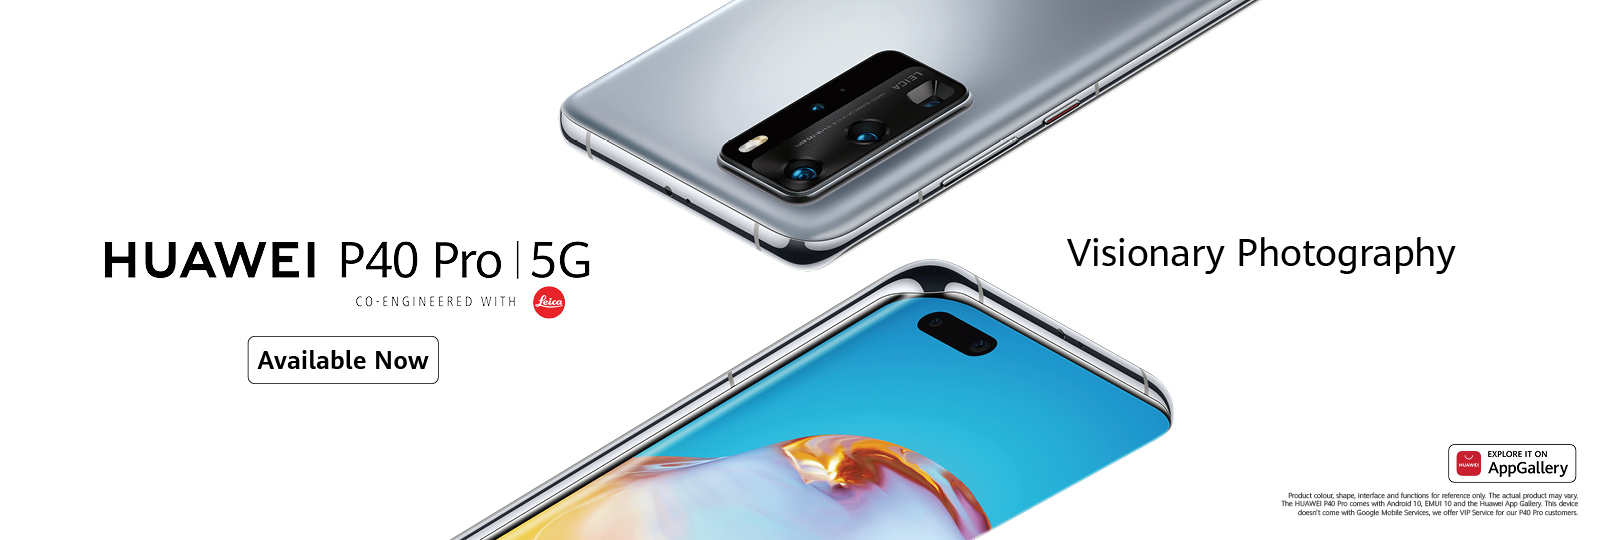 P40 Pro Available Now